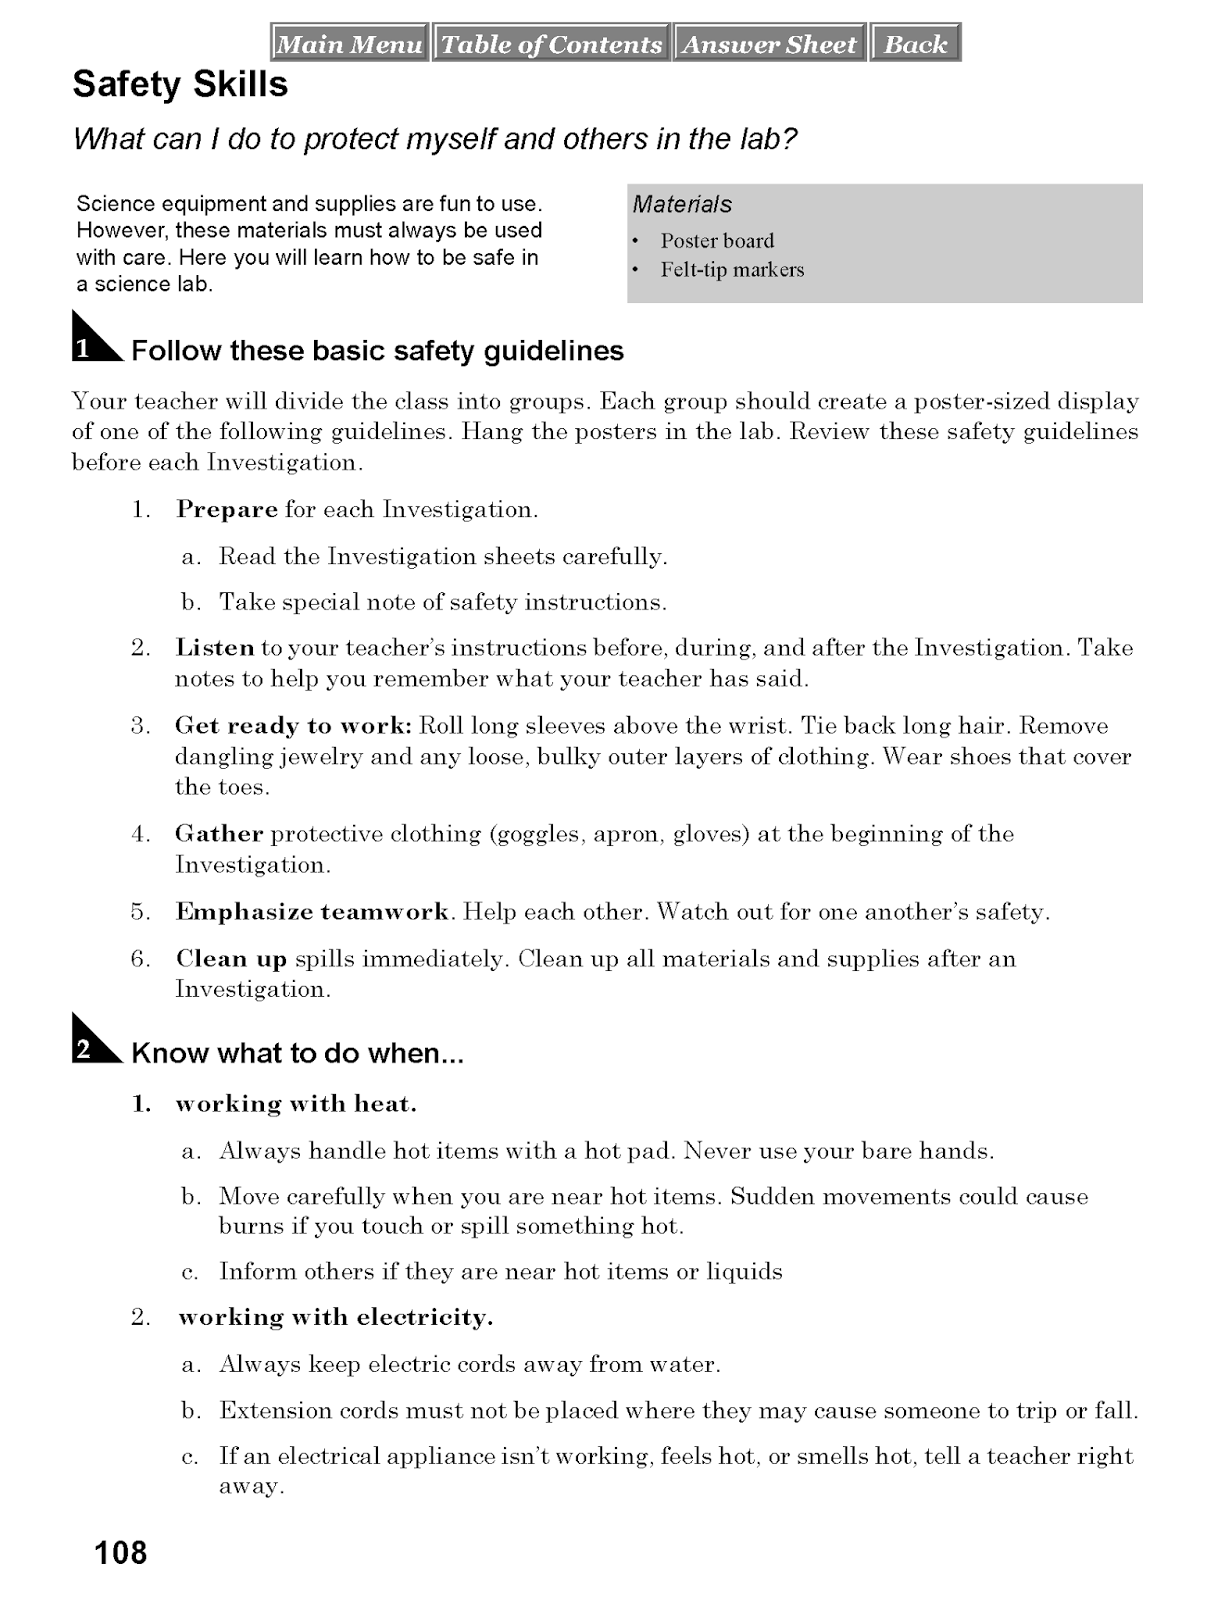 week miss durant s science class write rough draft of essay 1 write rough draft of i am poem paginate your isnb up to page 140 multiple intelligence survey given summary template